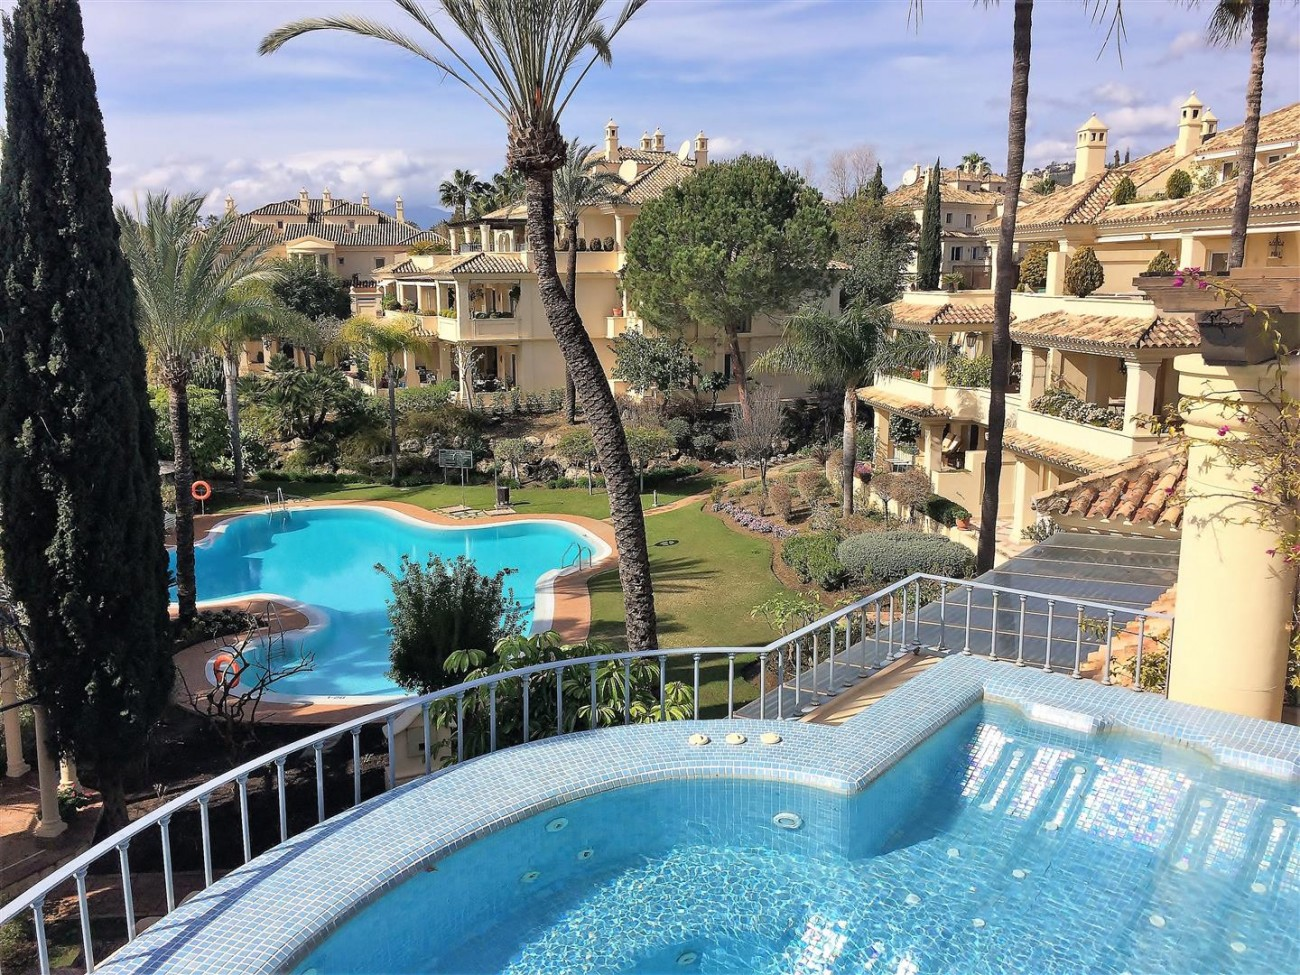 Penthouse for sale Las Alamandas Nueva Andalucia Marbella Spain (21) (Large)